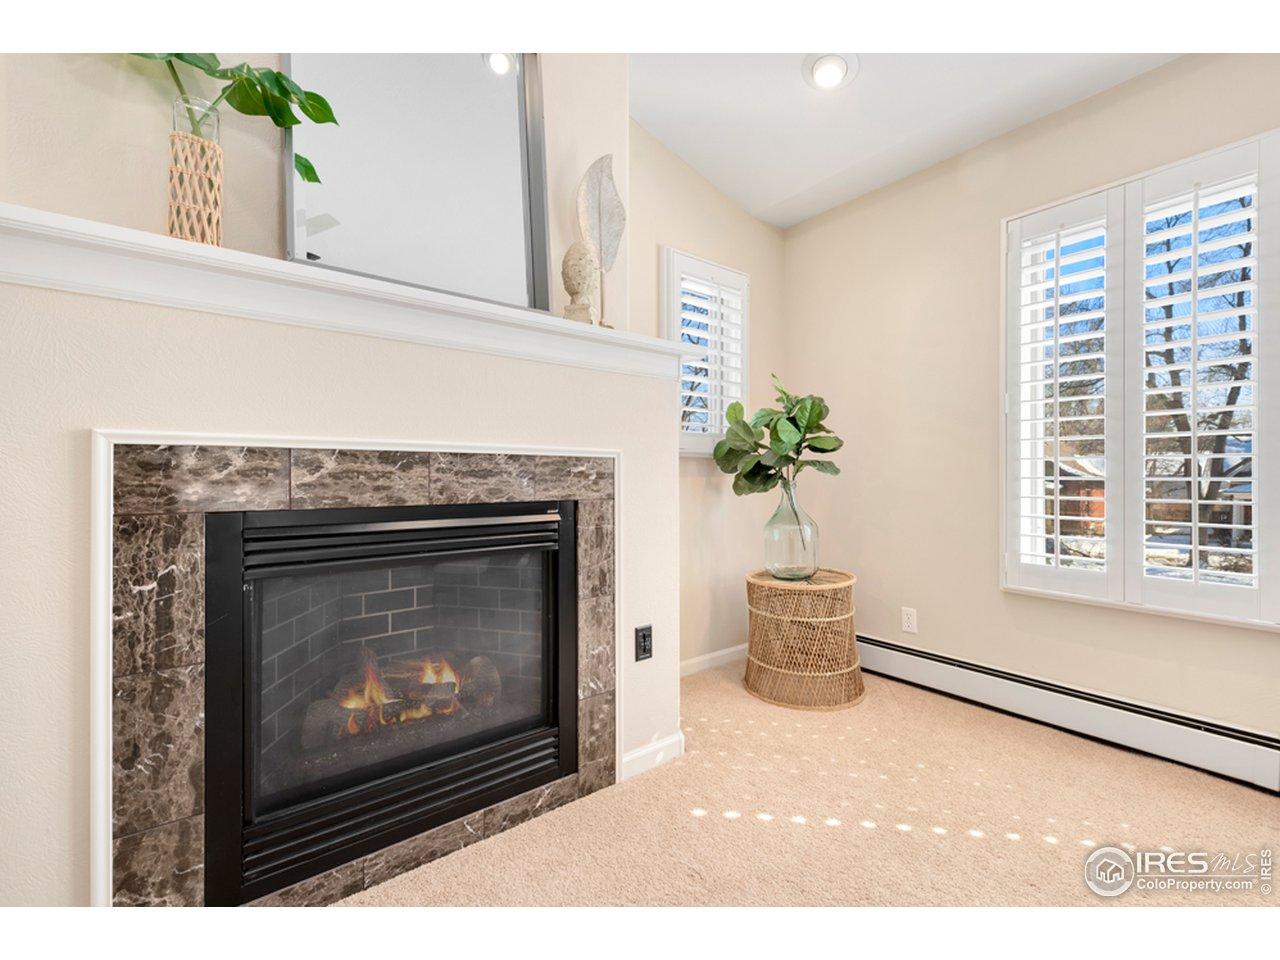 Fireplace in Master Bedroom